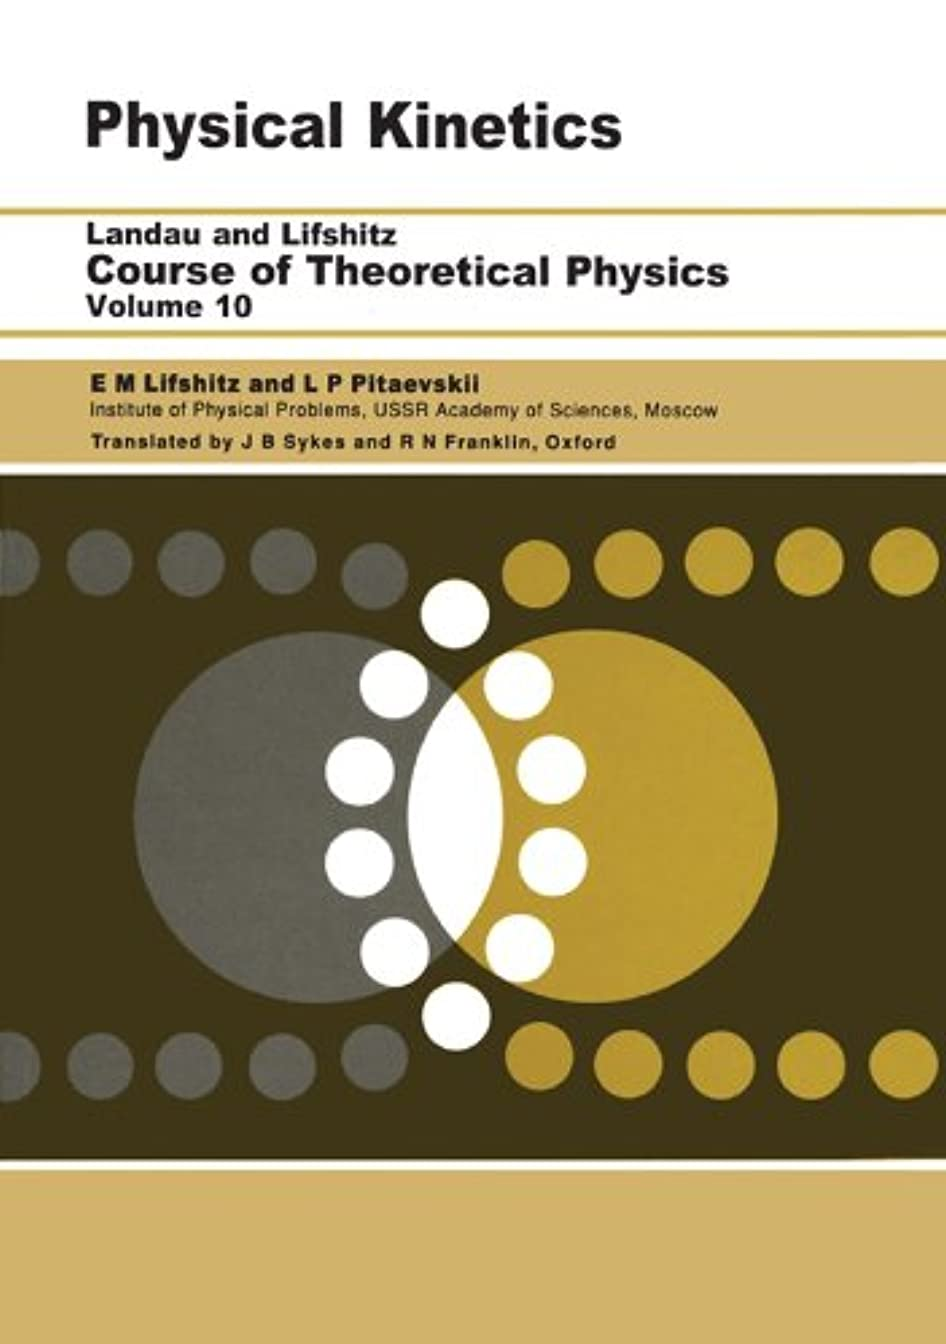 料理をする落ち込んでいる数学者Physical Kinetics: Volume 10 (Course of Theoretical Physics S) (English Edition)